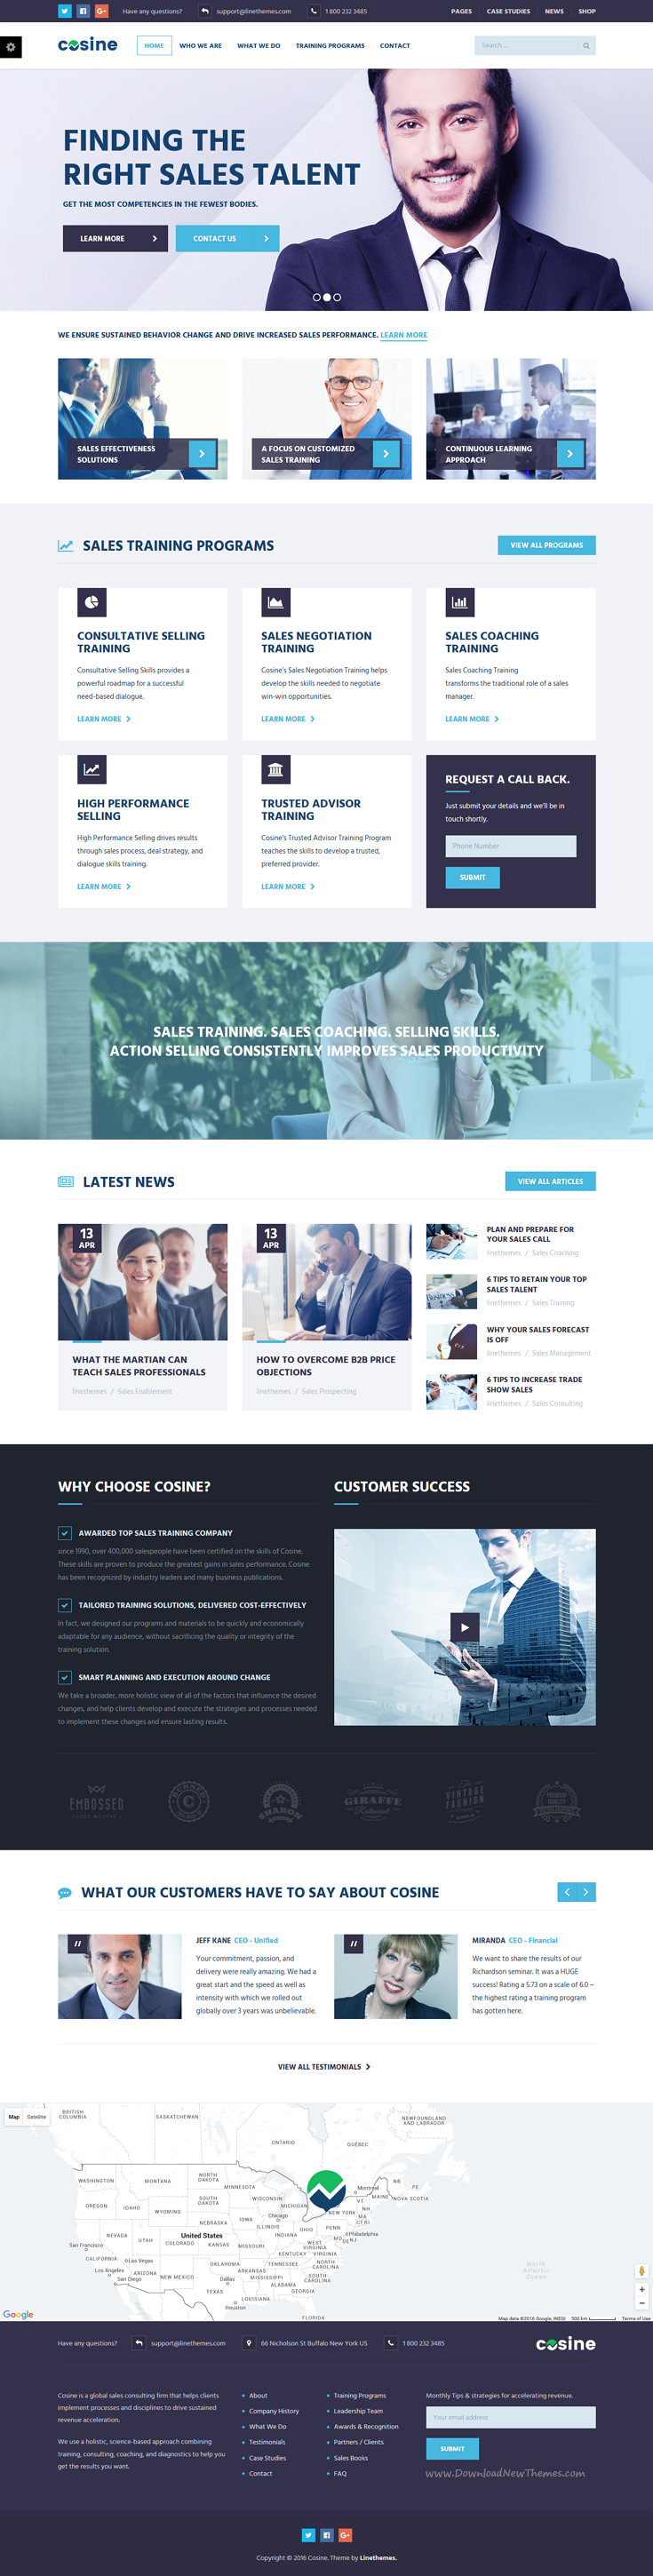 Cosine training coaching business wordpress theme best of cosine training coaching business wordpress theme friedricerecipe Gallery